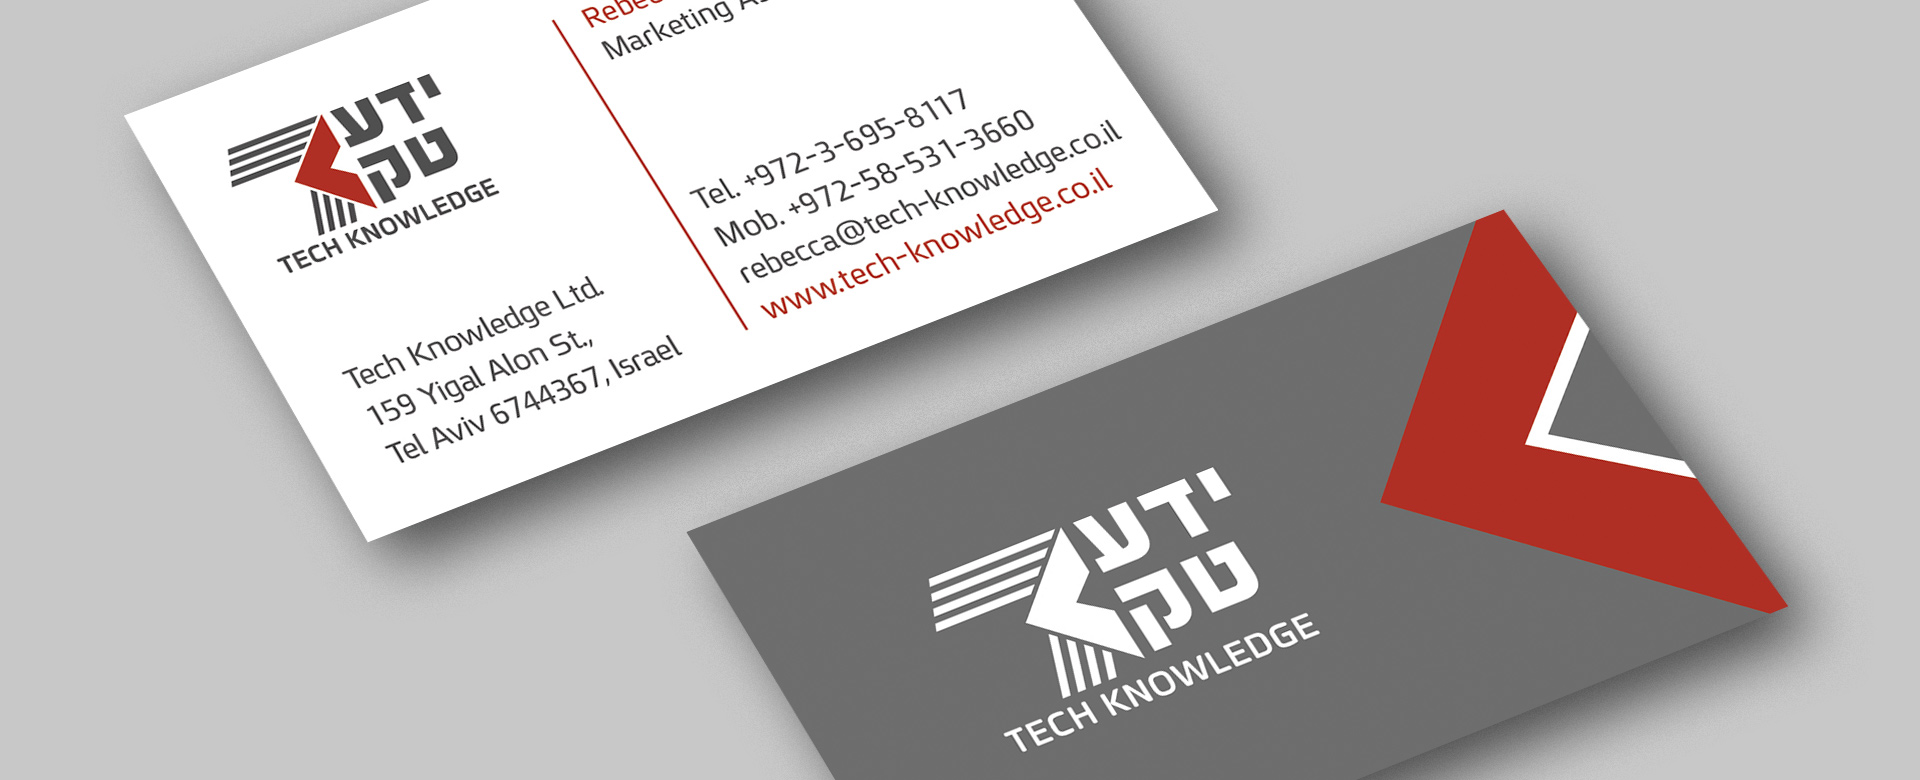 Tech Knowledge business card